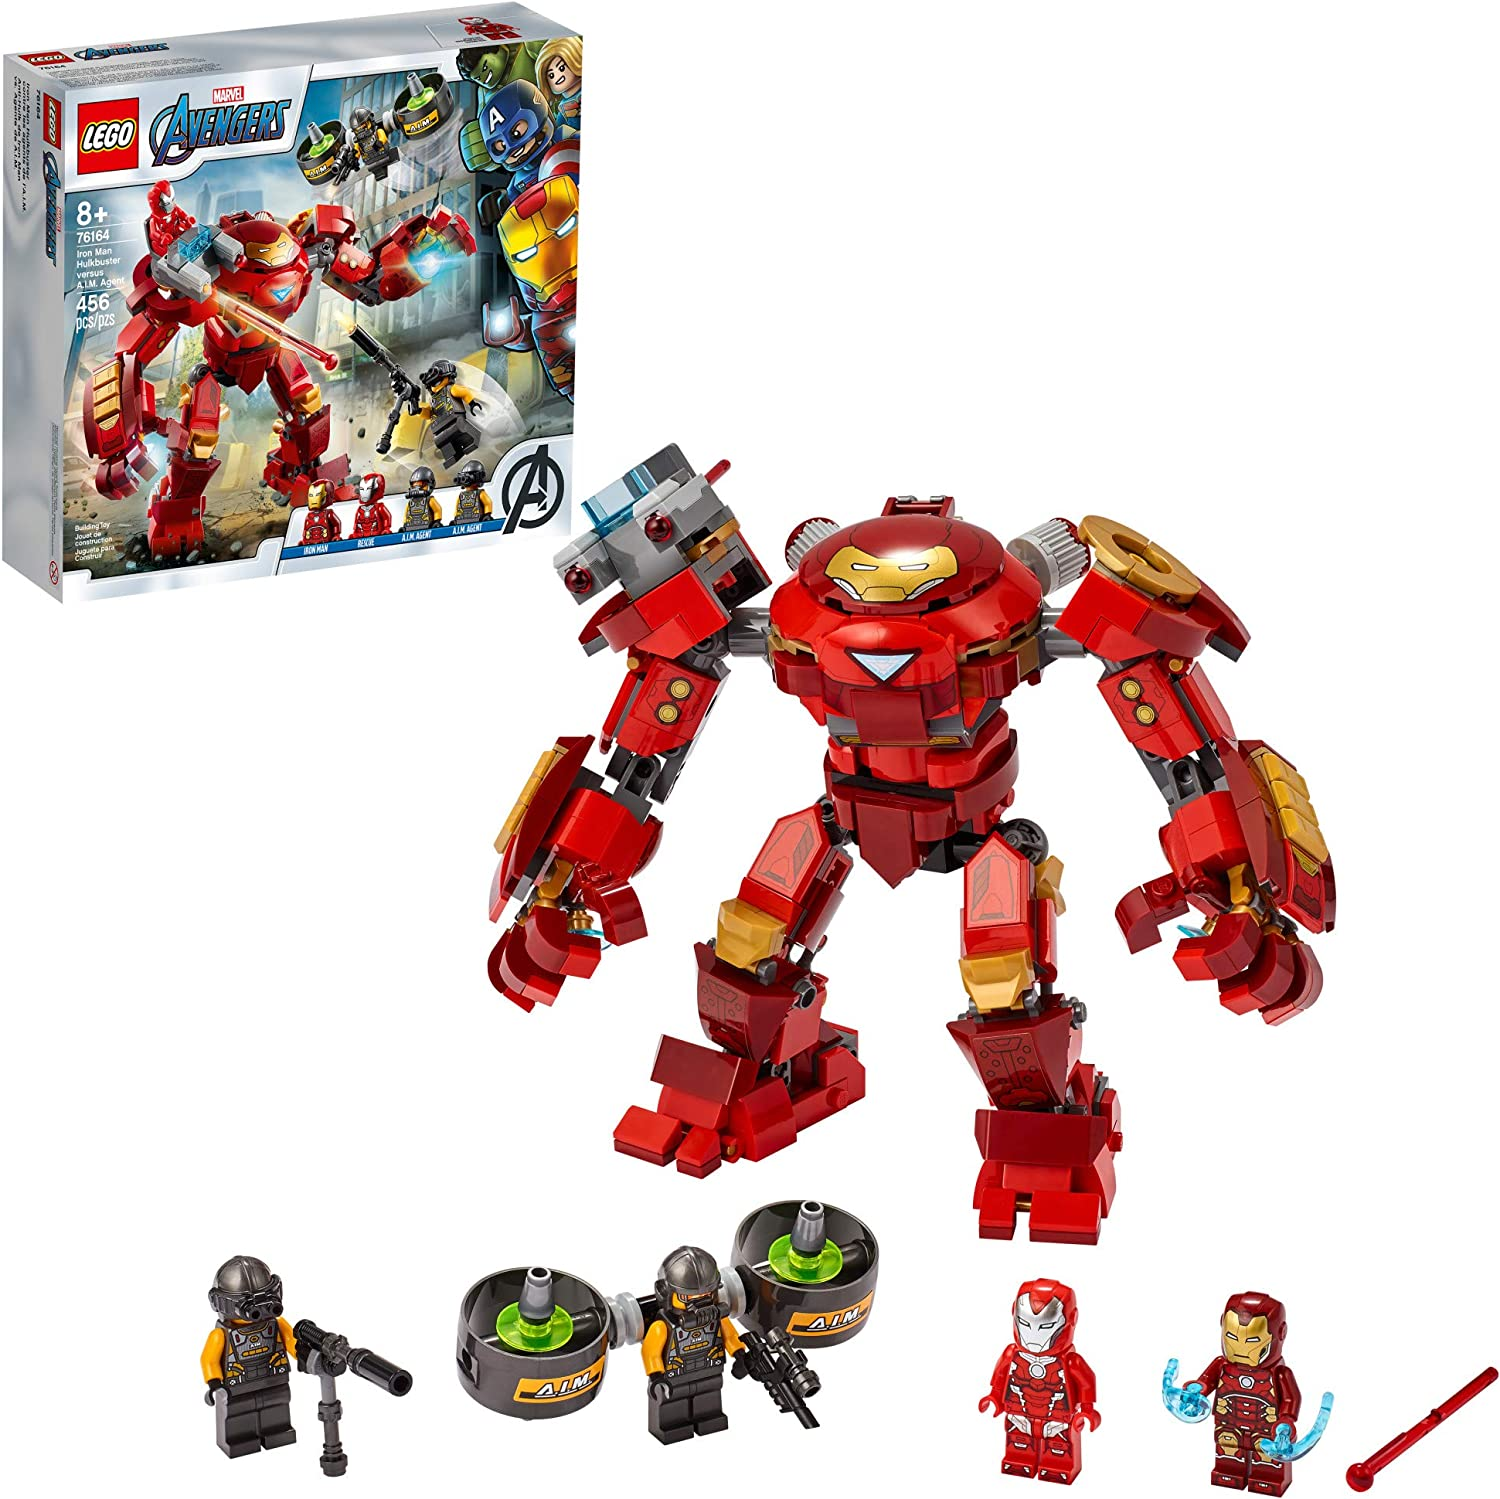 LEGO Marvel Avengers Iron Man Hulkbuster Versus A.I.M. Agent 76164, Cool, Interactive, Brick-Build Avengers Playset with Minifigures, New 2020 (456 Pieces)